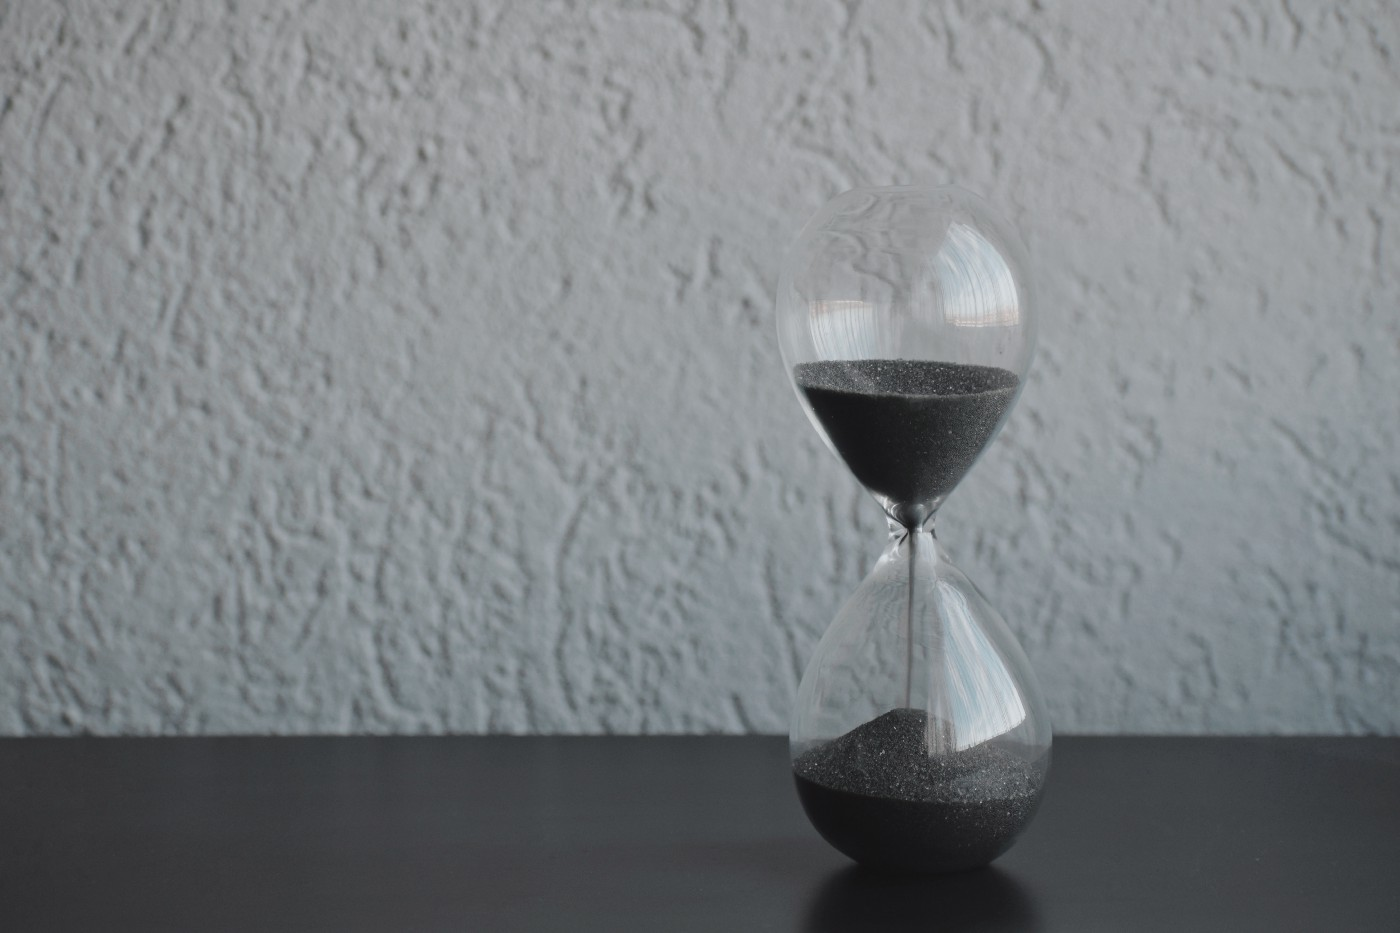 An hourglass on a black surface, sand falling.